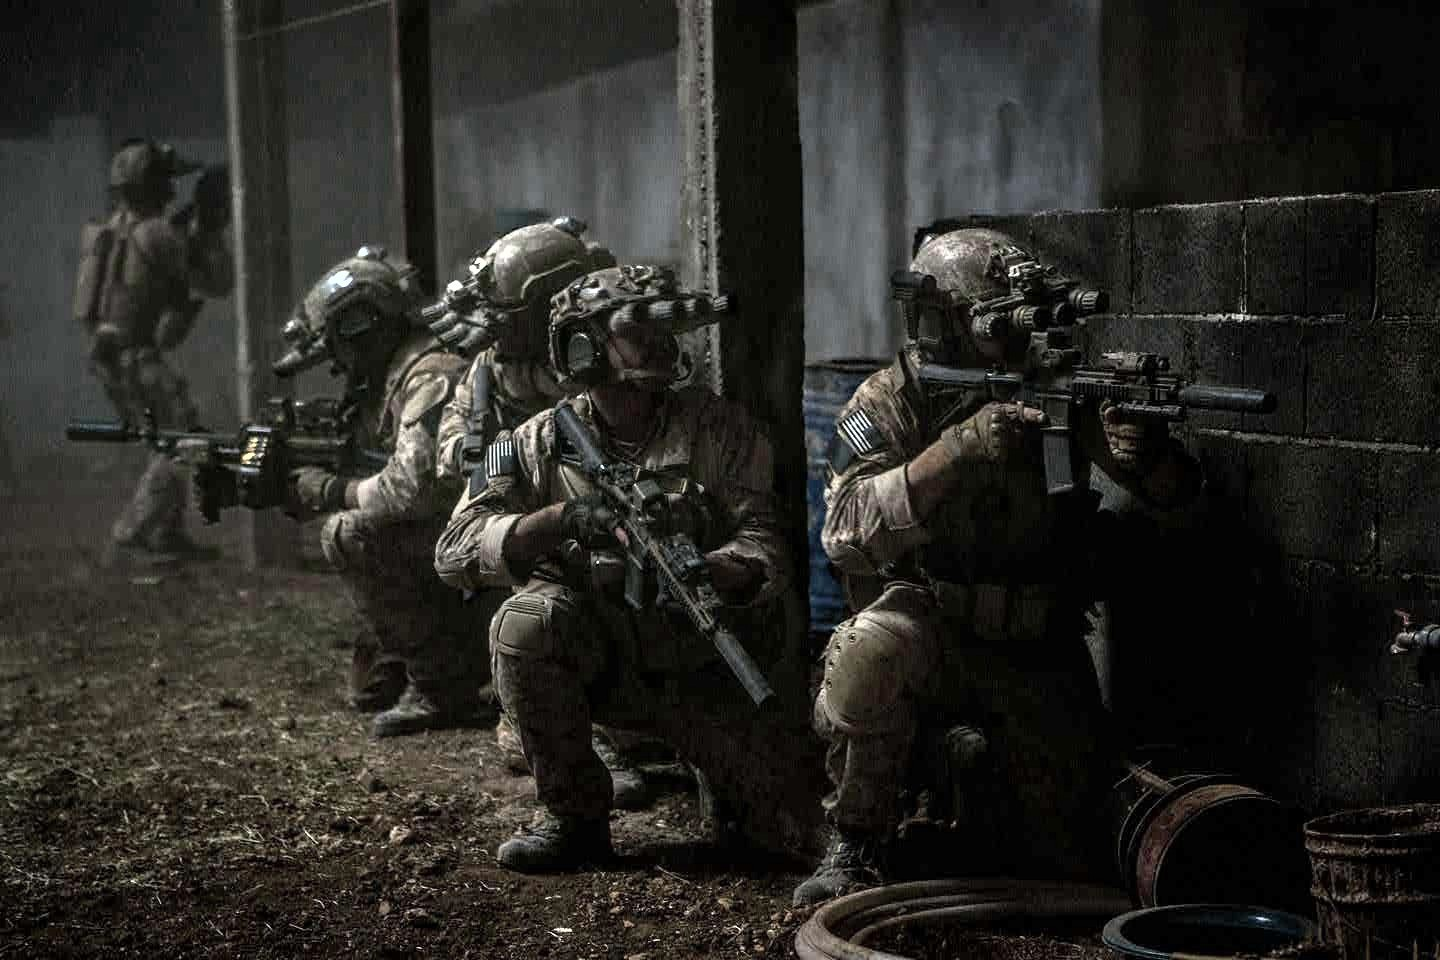 Operatives of US Navy SEAL Team Six (aka DEVGRU) close in on bin Laden's compound in the dead of night.